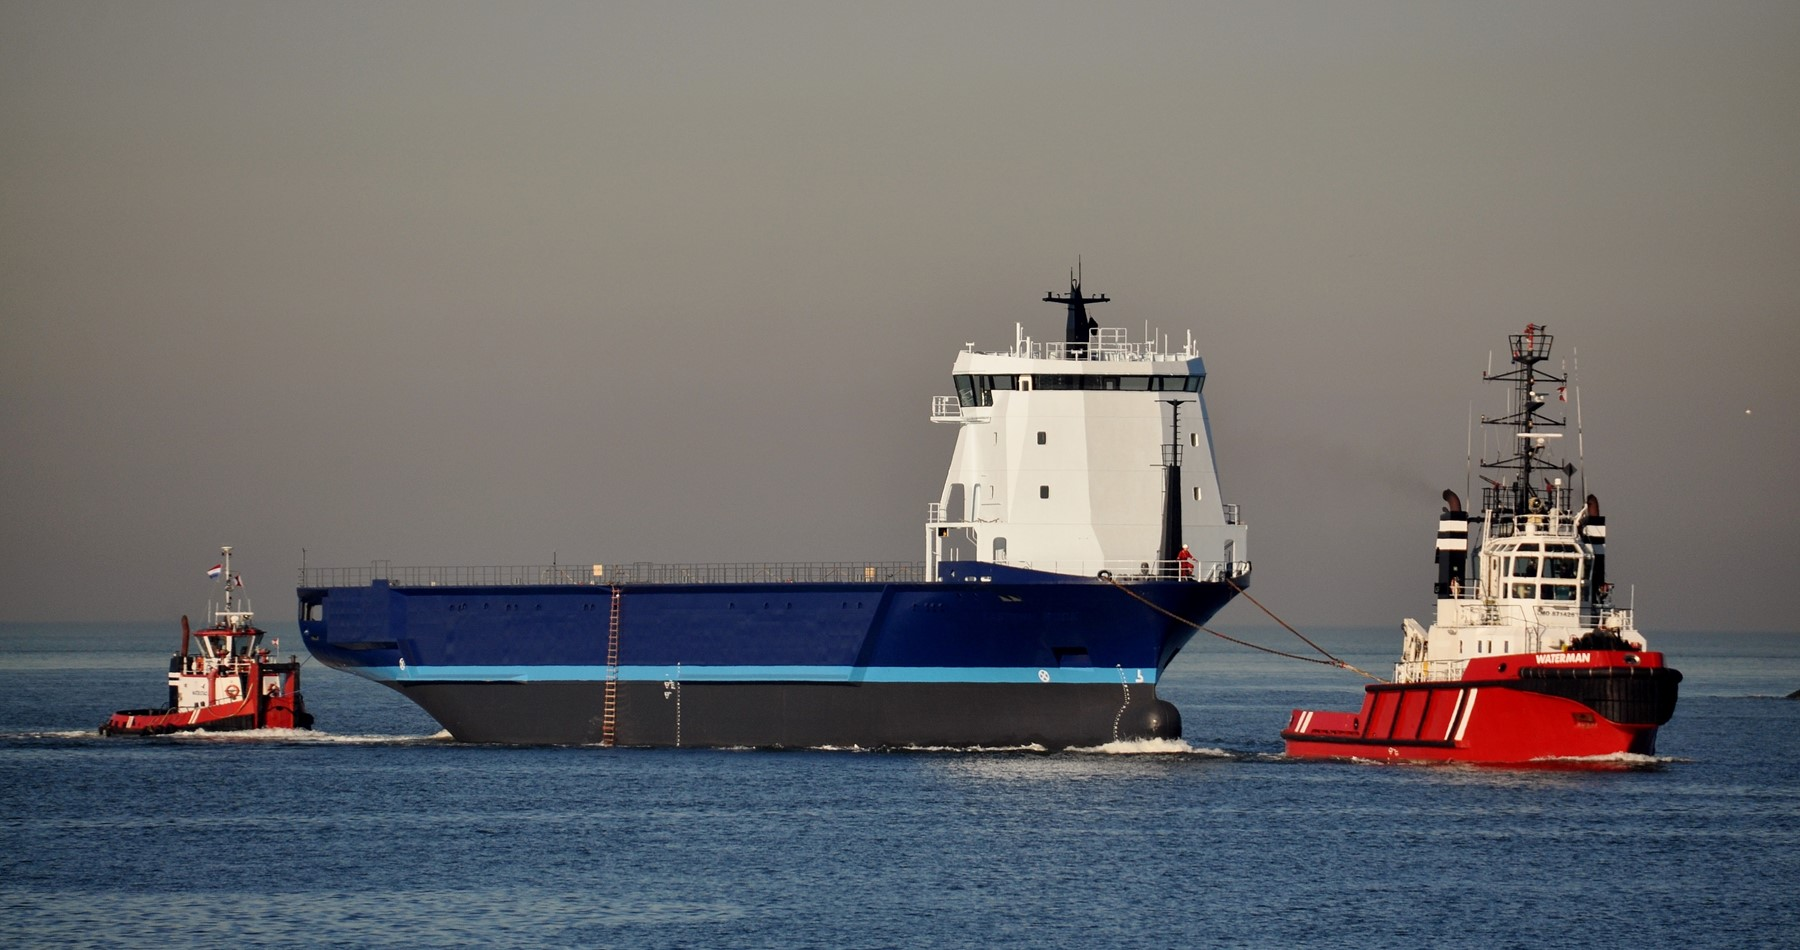 Wagenborg Towage transports hull from Szczecin to Urk